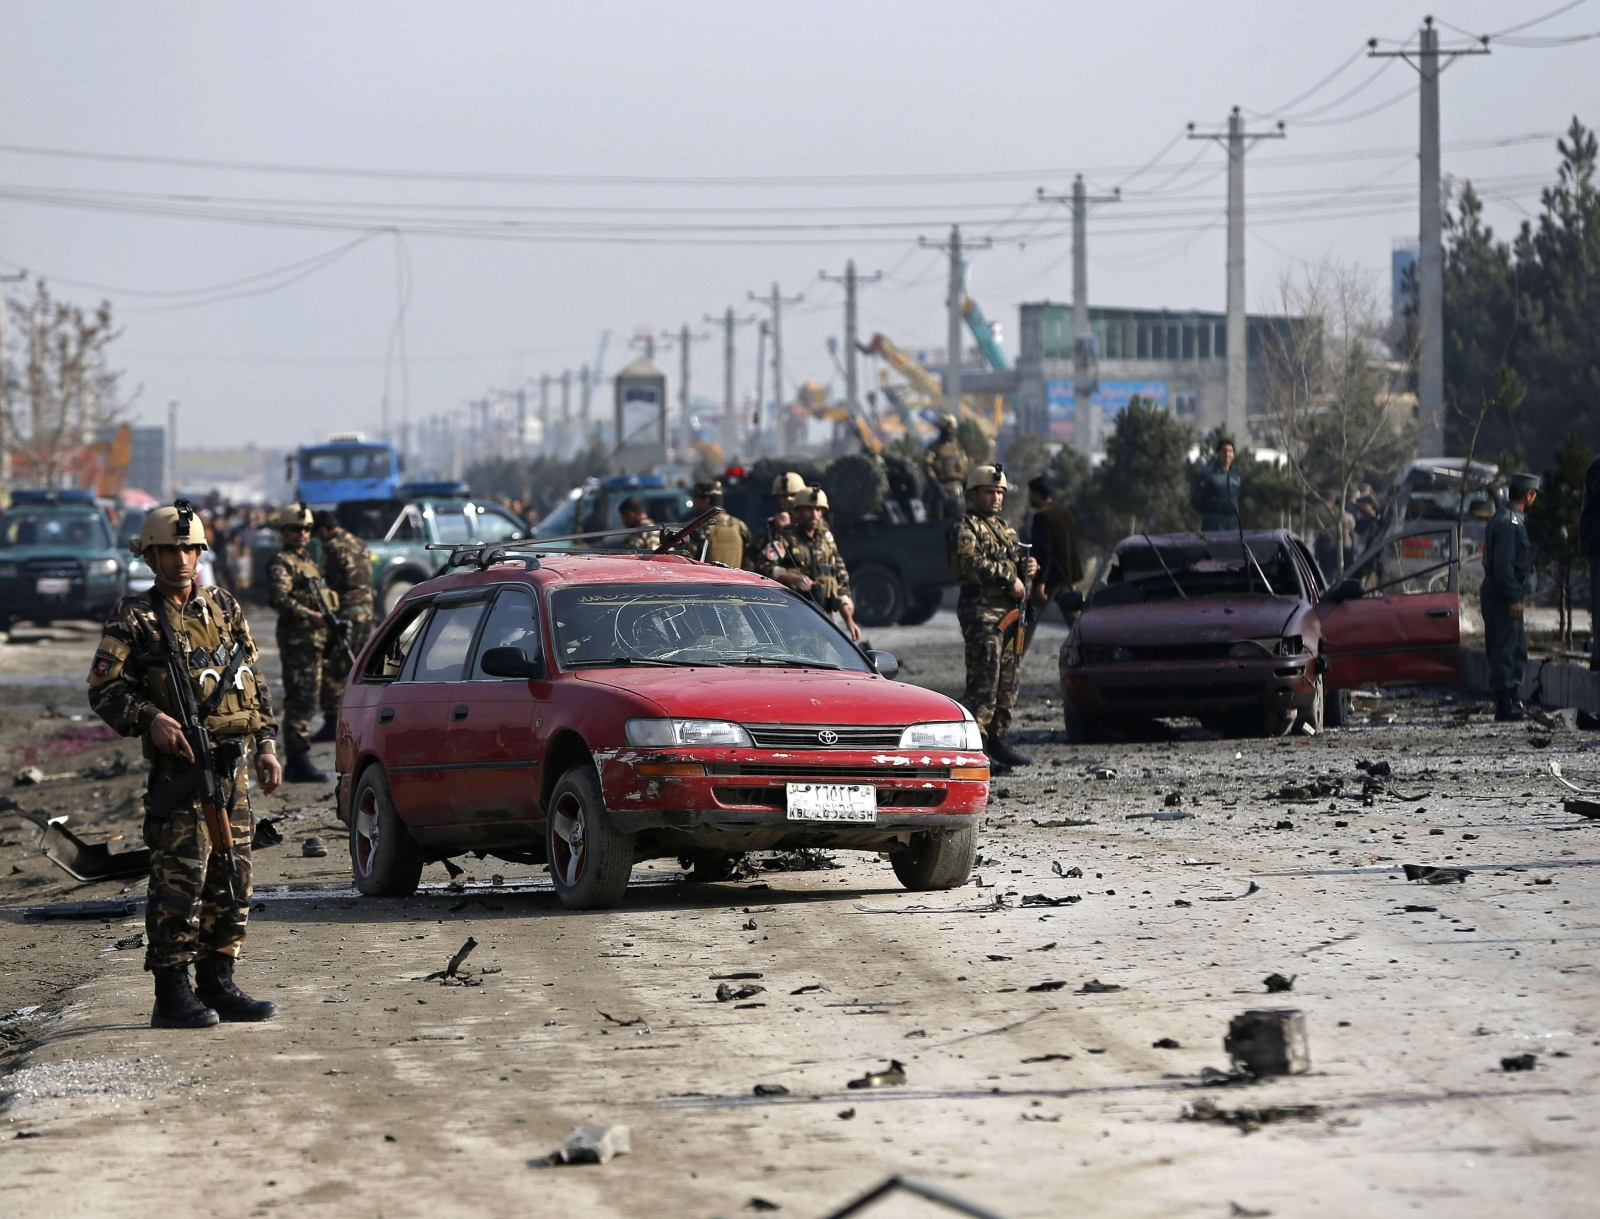 British Embassy Car Blasted by Bomb in Kabul Killing Four